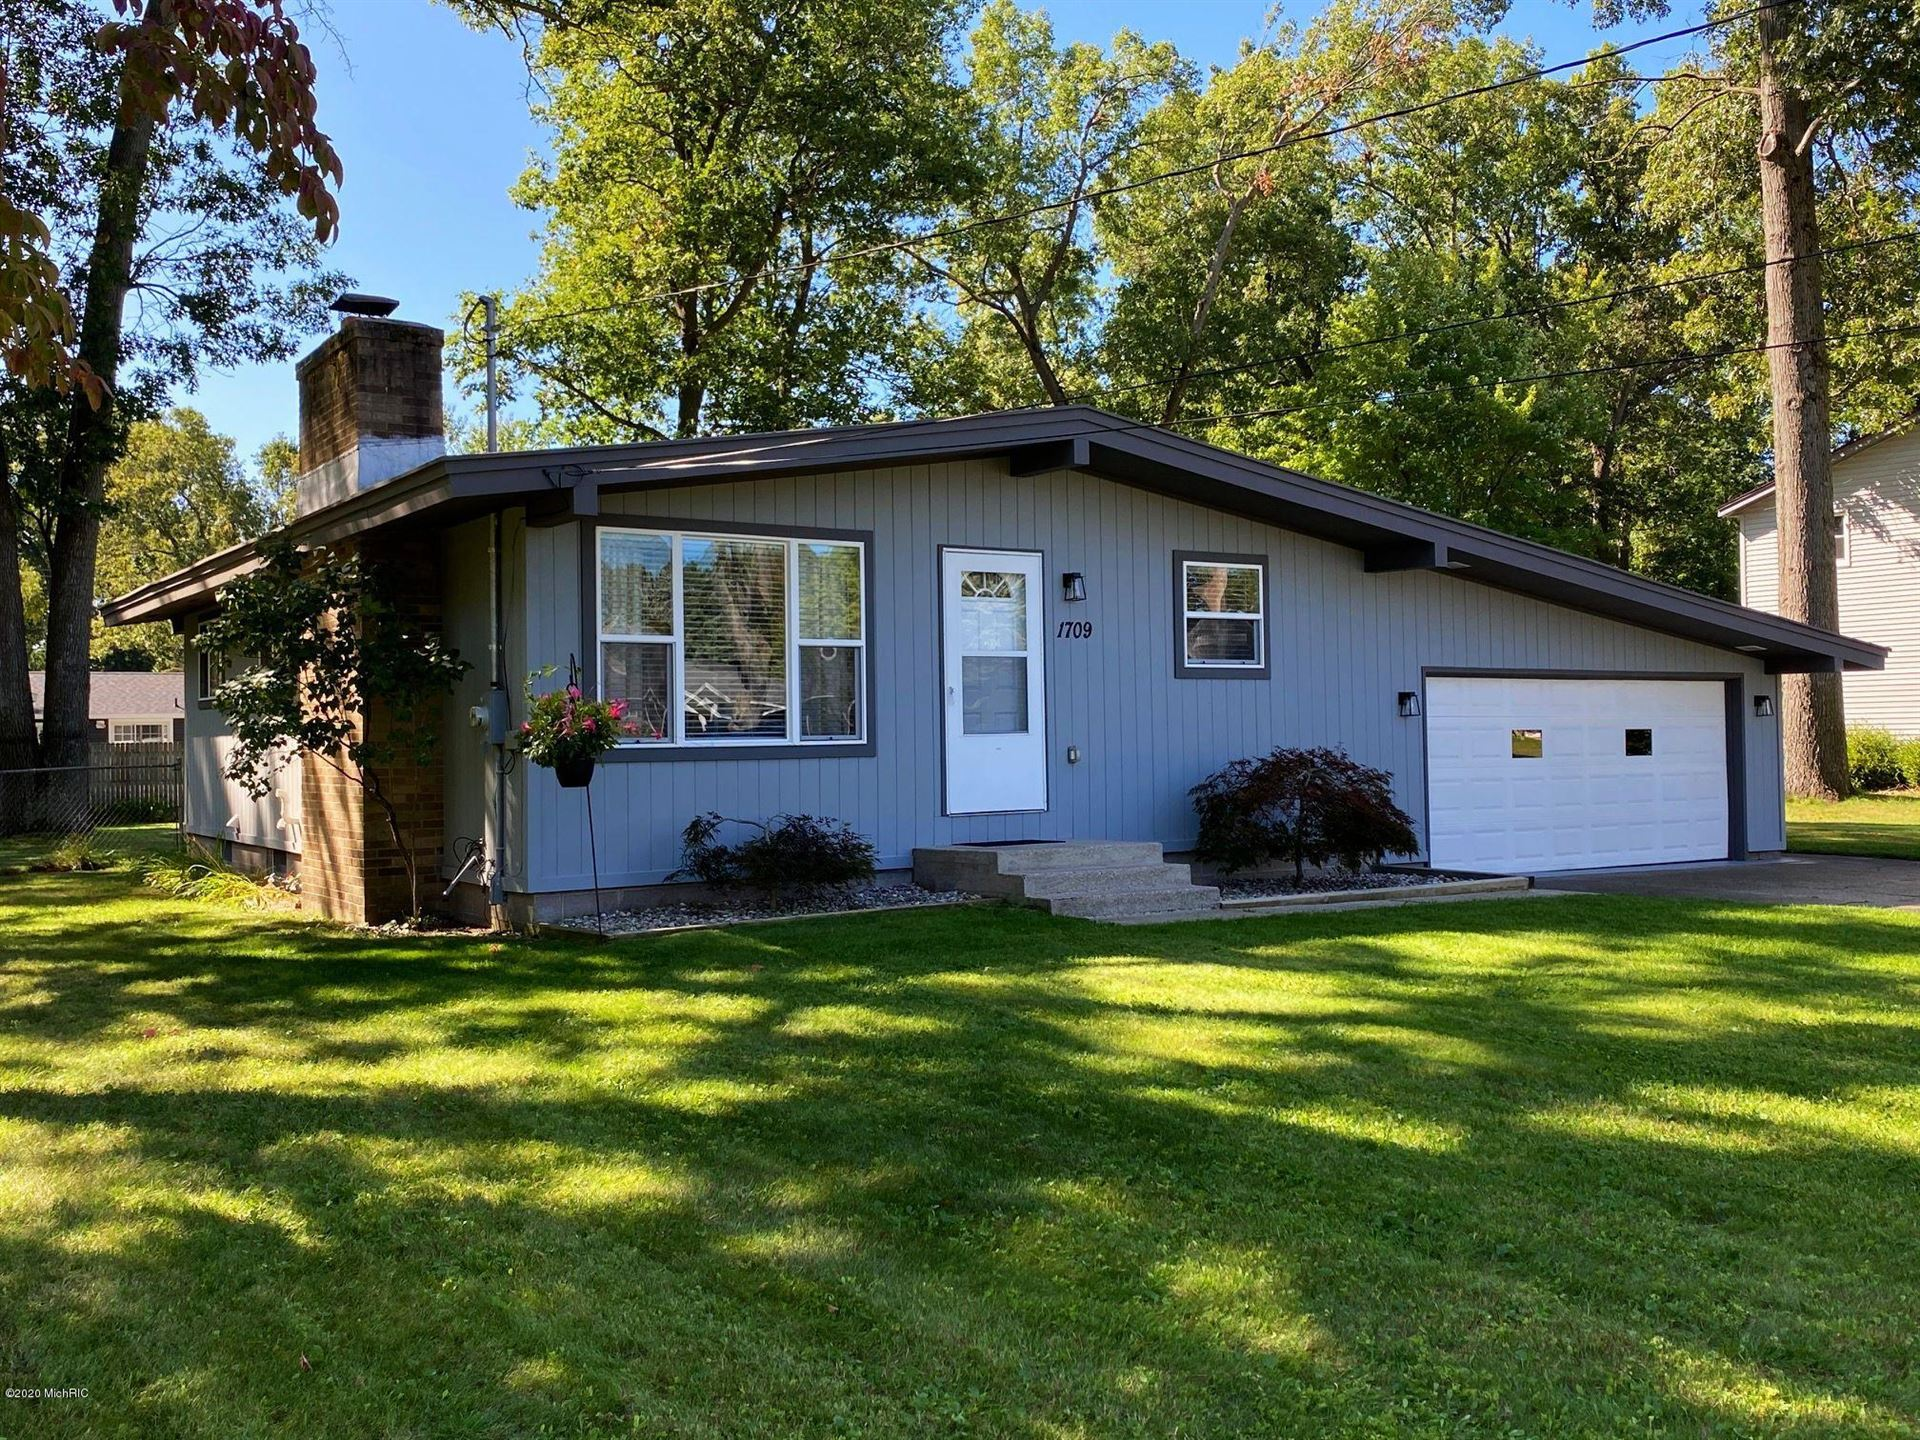 Photo of 1709 Manistee Road, Muskegon, MI 49445 (MLS # 20039217)